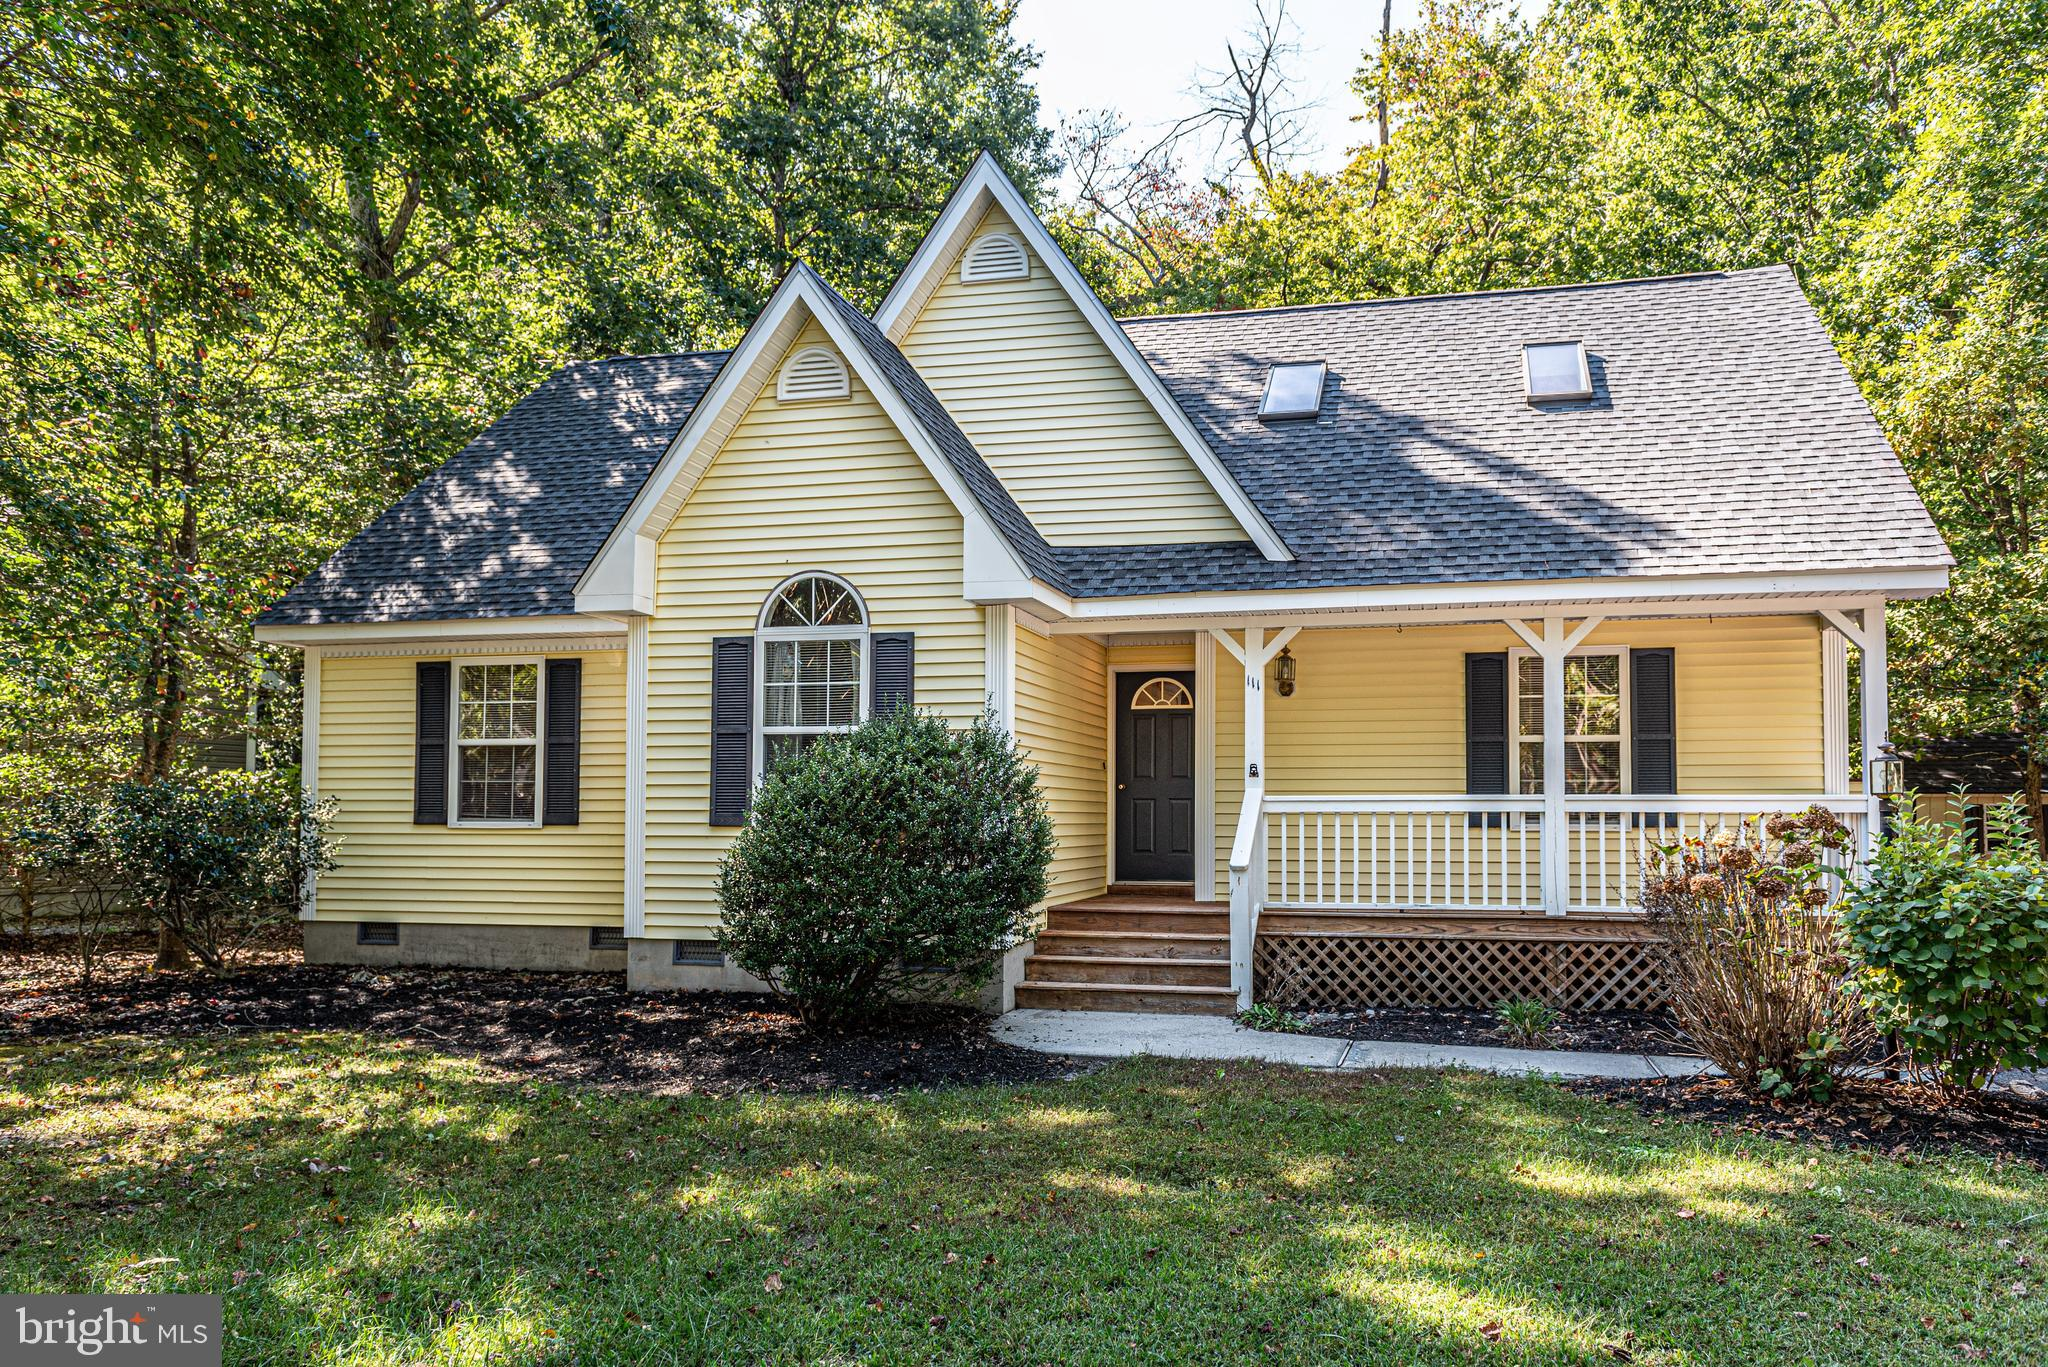 Nestled on 1/2 acre wooded lot, this charming home has a lot to offer. Fabulous 2 story home with li